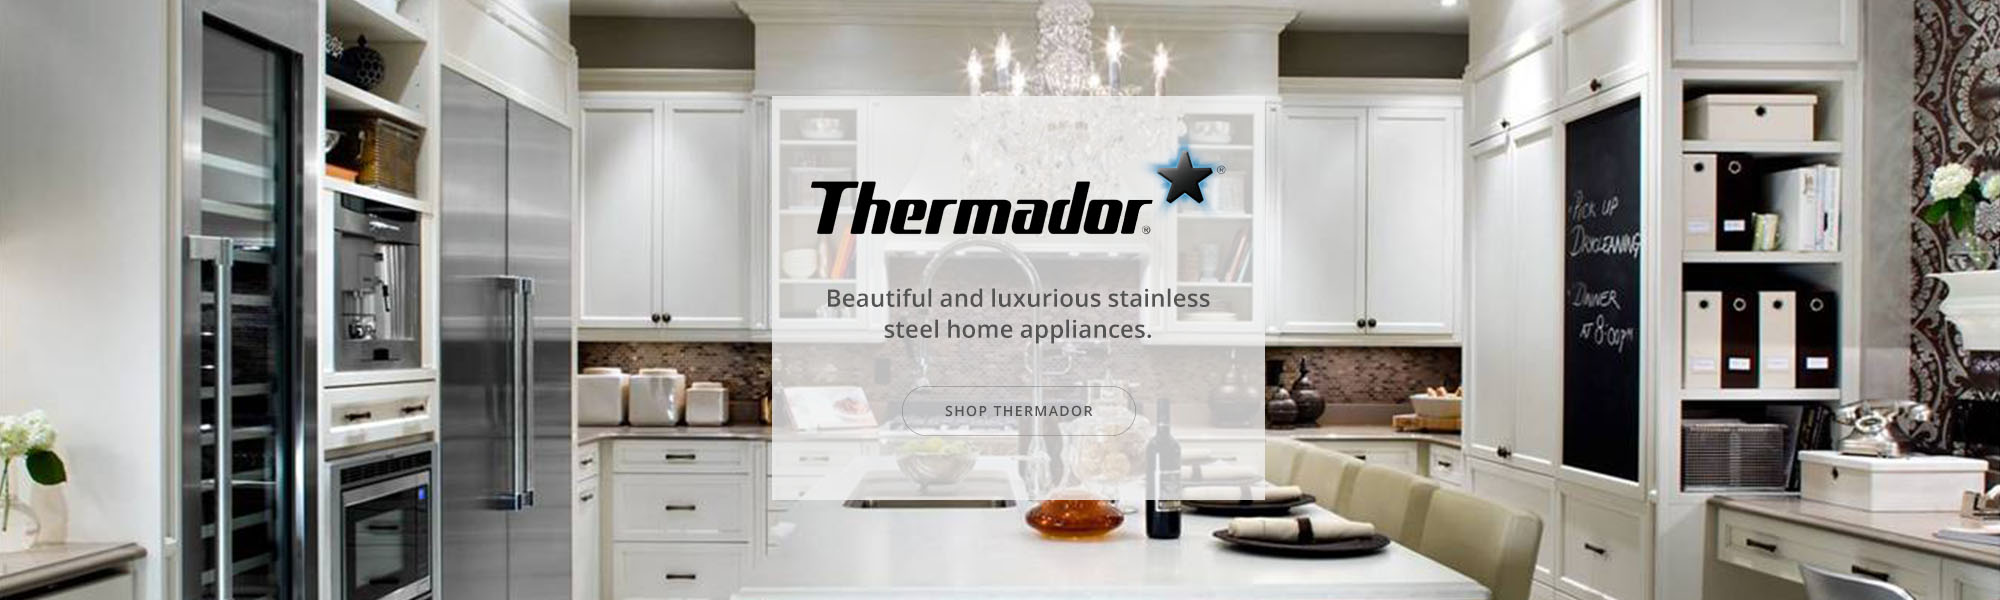 Thermador banner